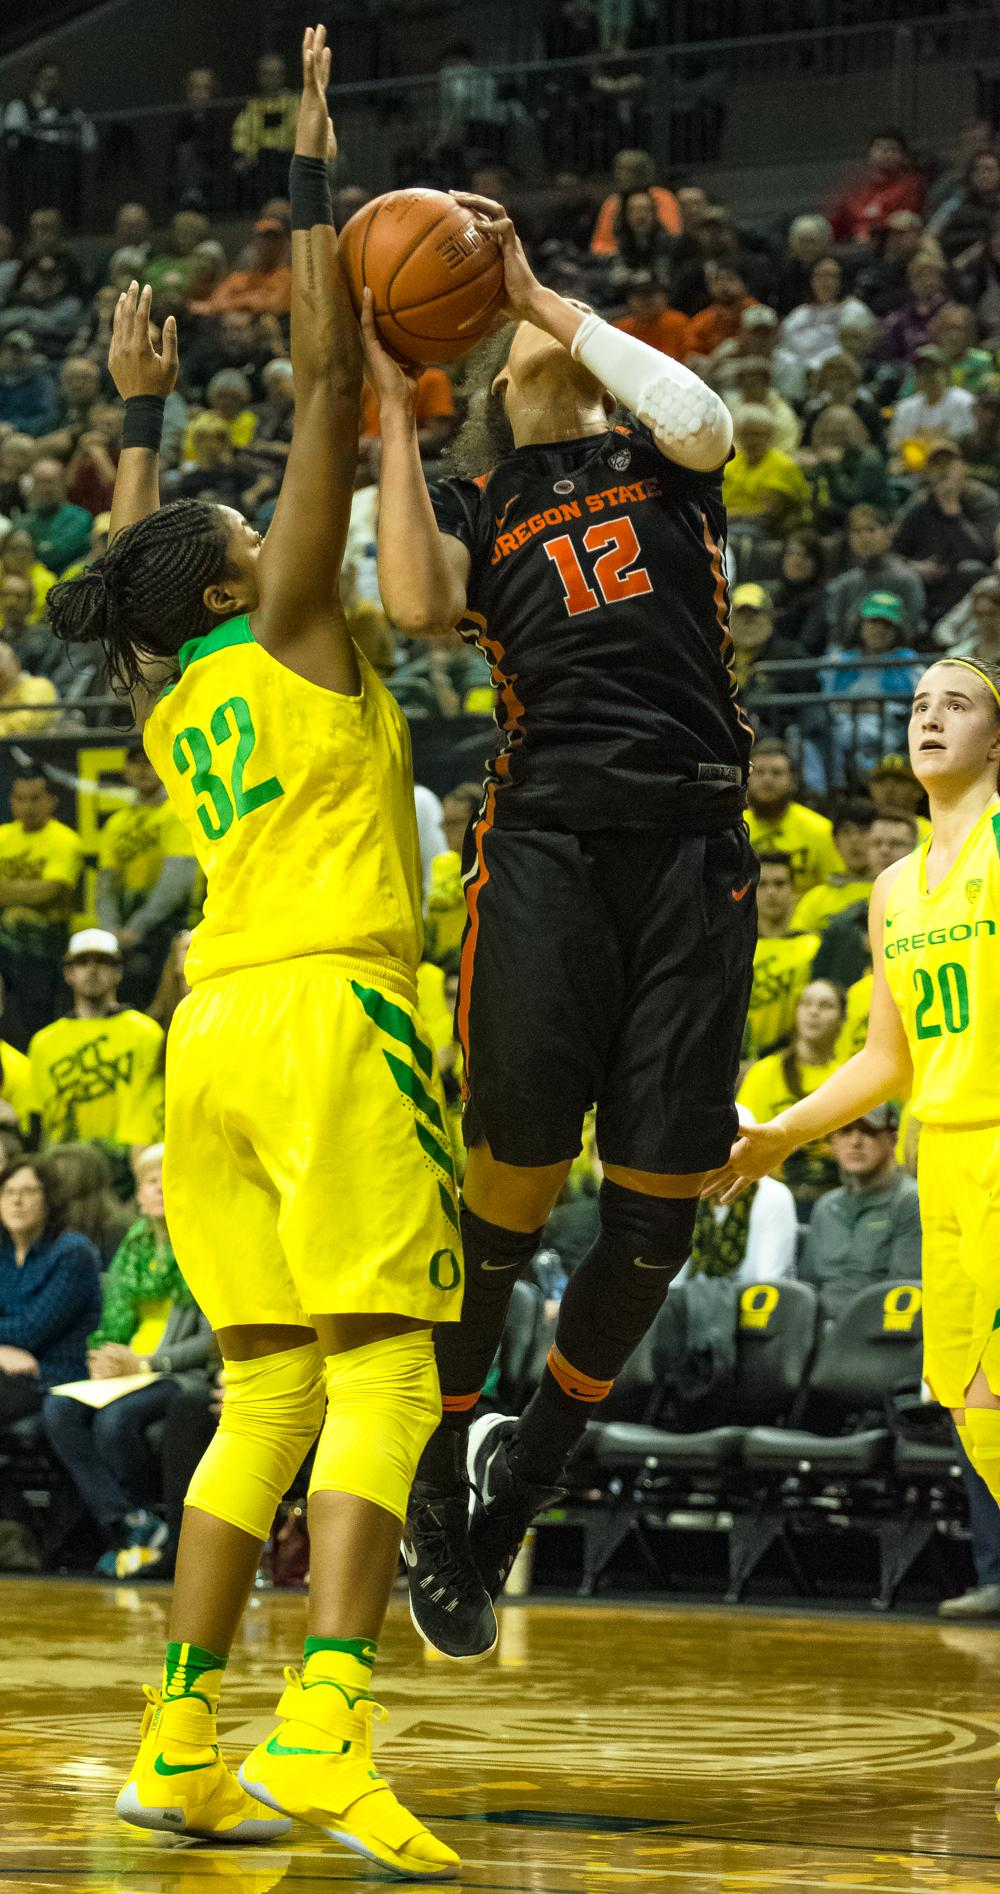 Oregon Ducks Forward Oti Gildon (#32) defends against Oregon State Forward Kolbie Orum (#12) to stop the easy layup. Oregon Ducks lost 40-43 to Oregon State Beavers in a tightly matched fourth quarter. Photo by Jonathan Booker, Oregon News Lab